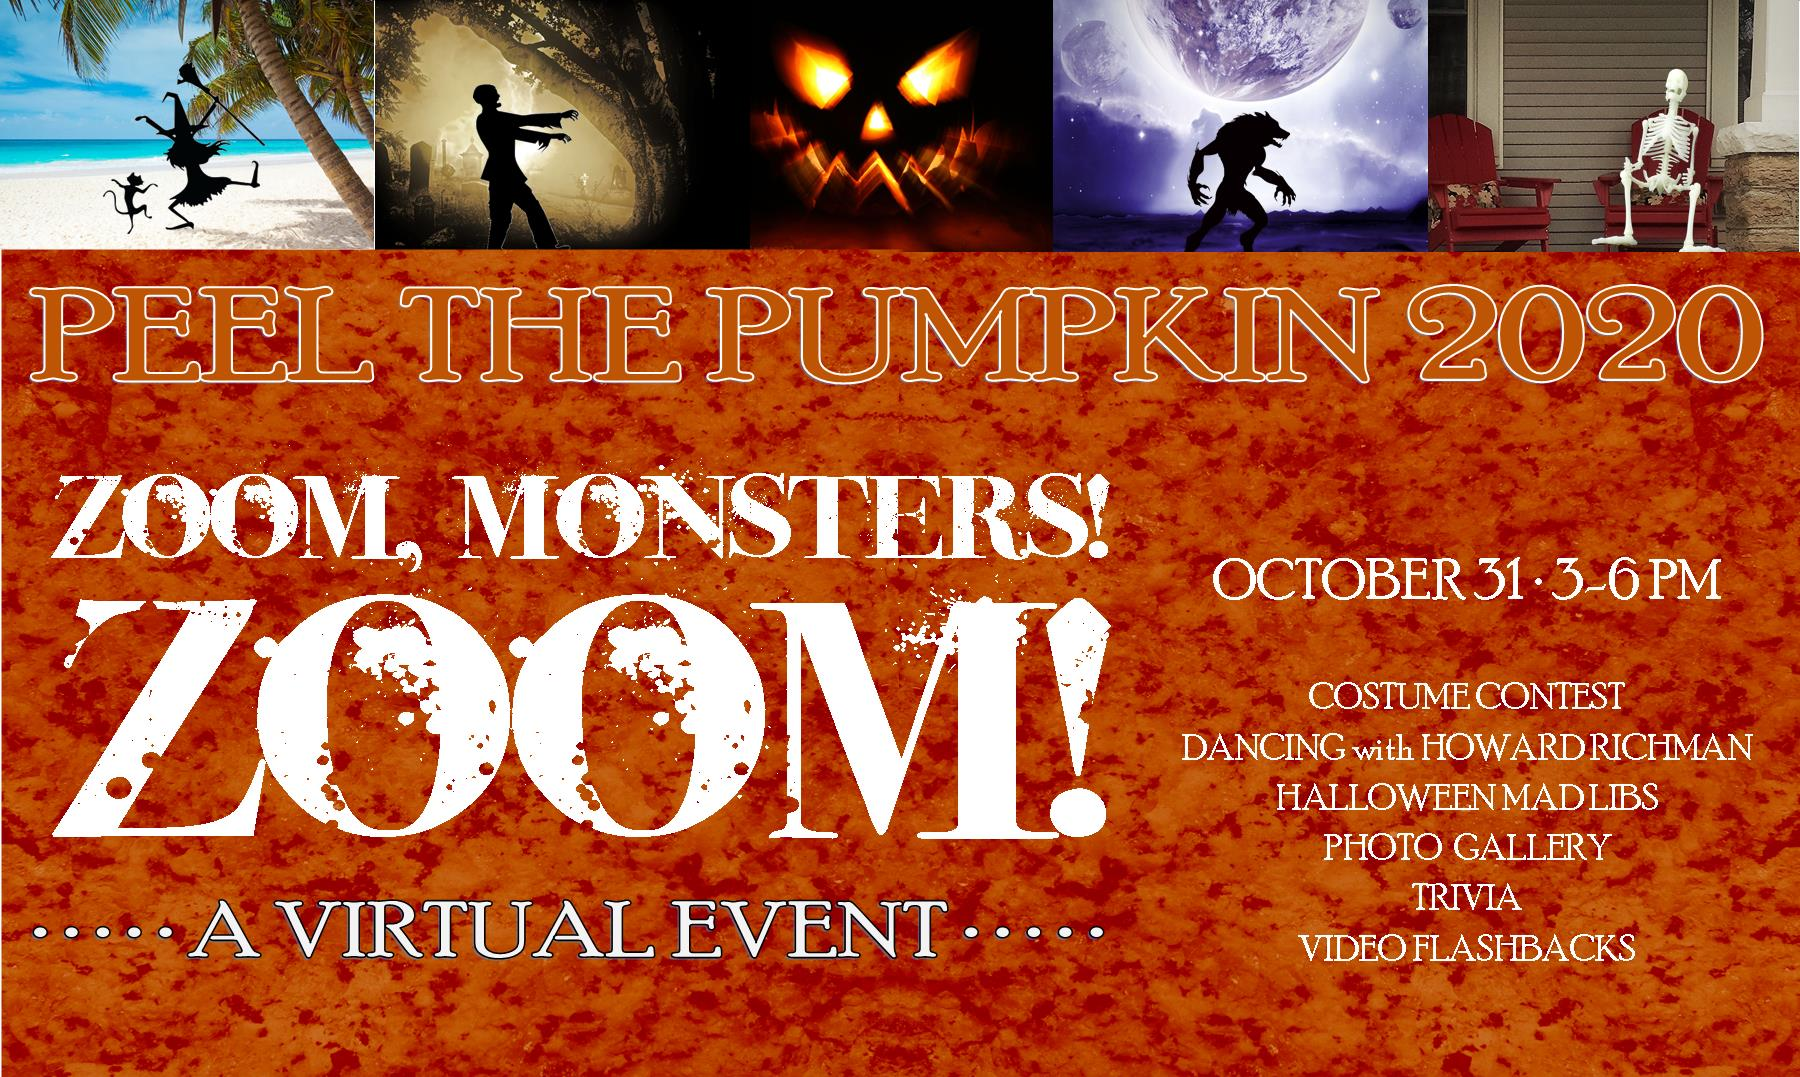 Come Join Us for a Virtual Peel the Pumpkin